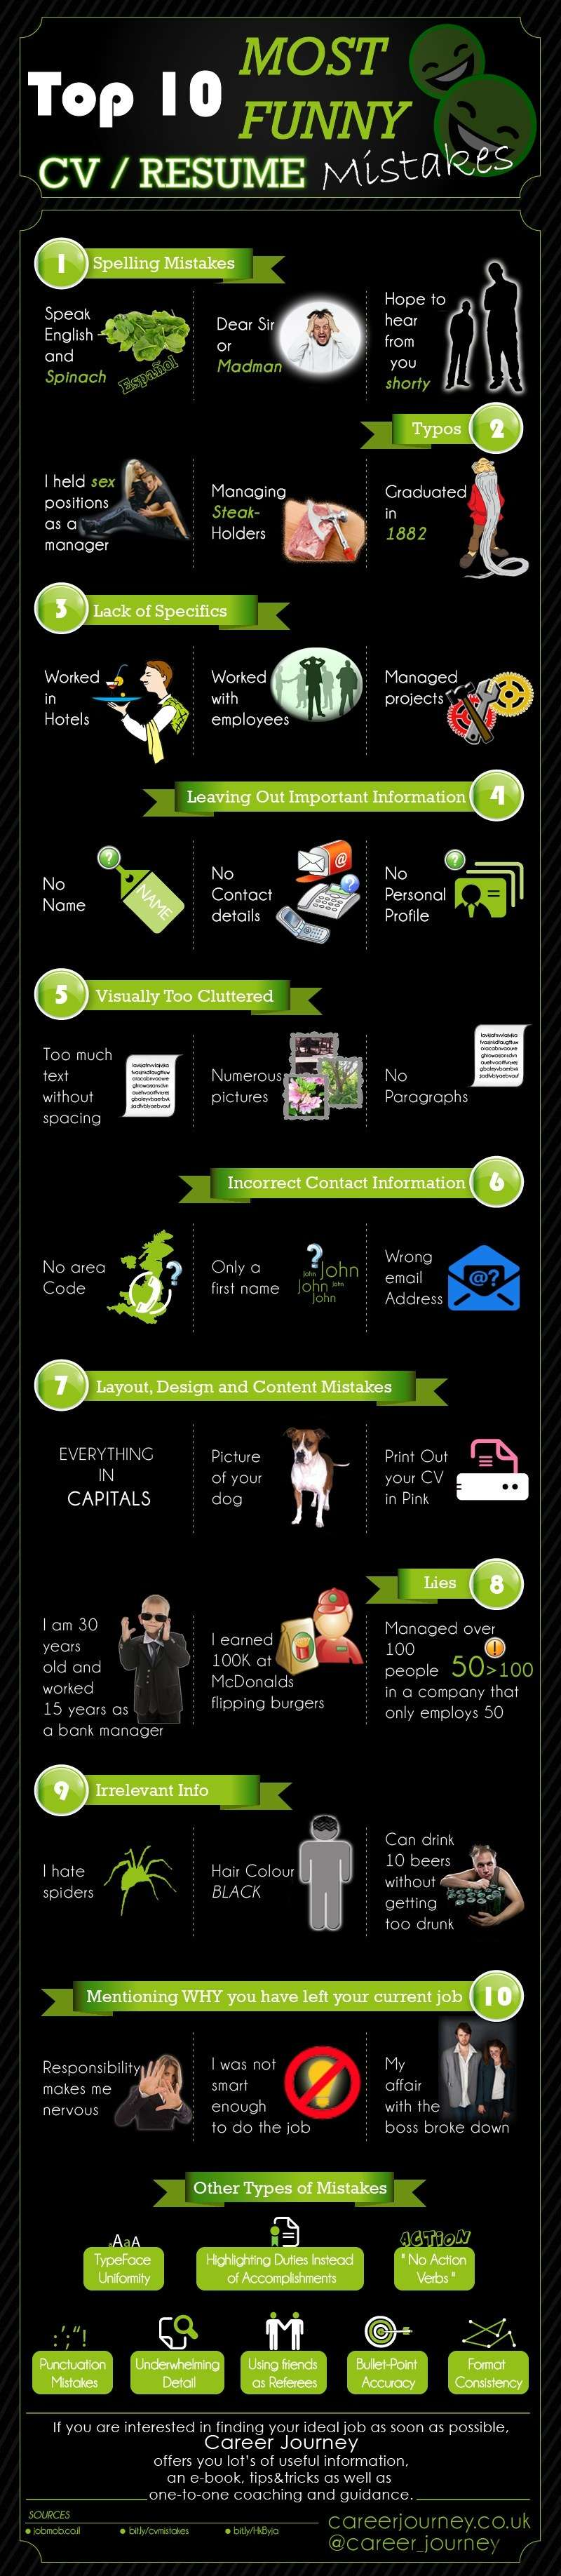 infographic top 10 funny resume mistakes